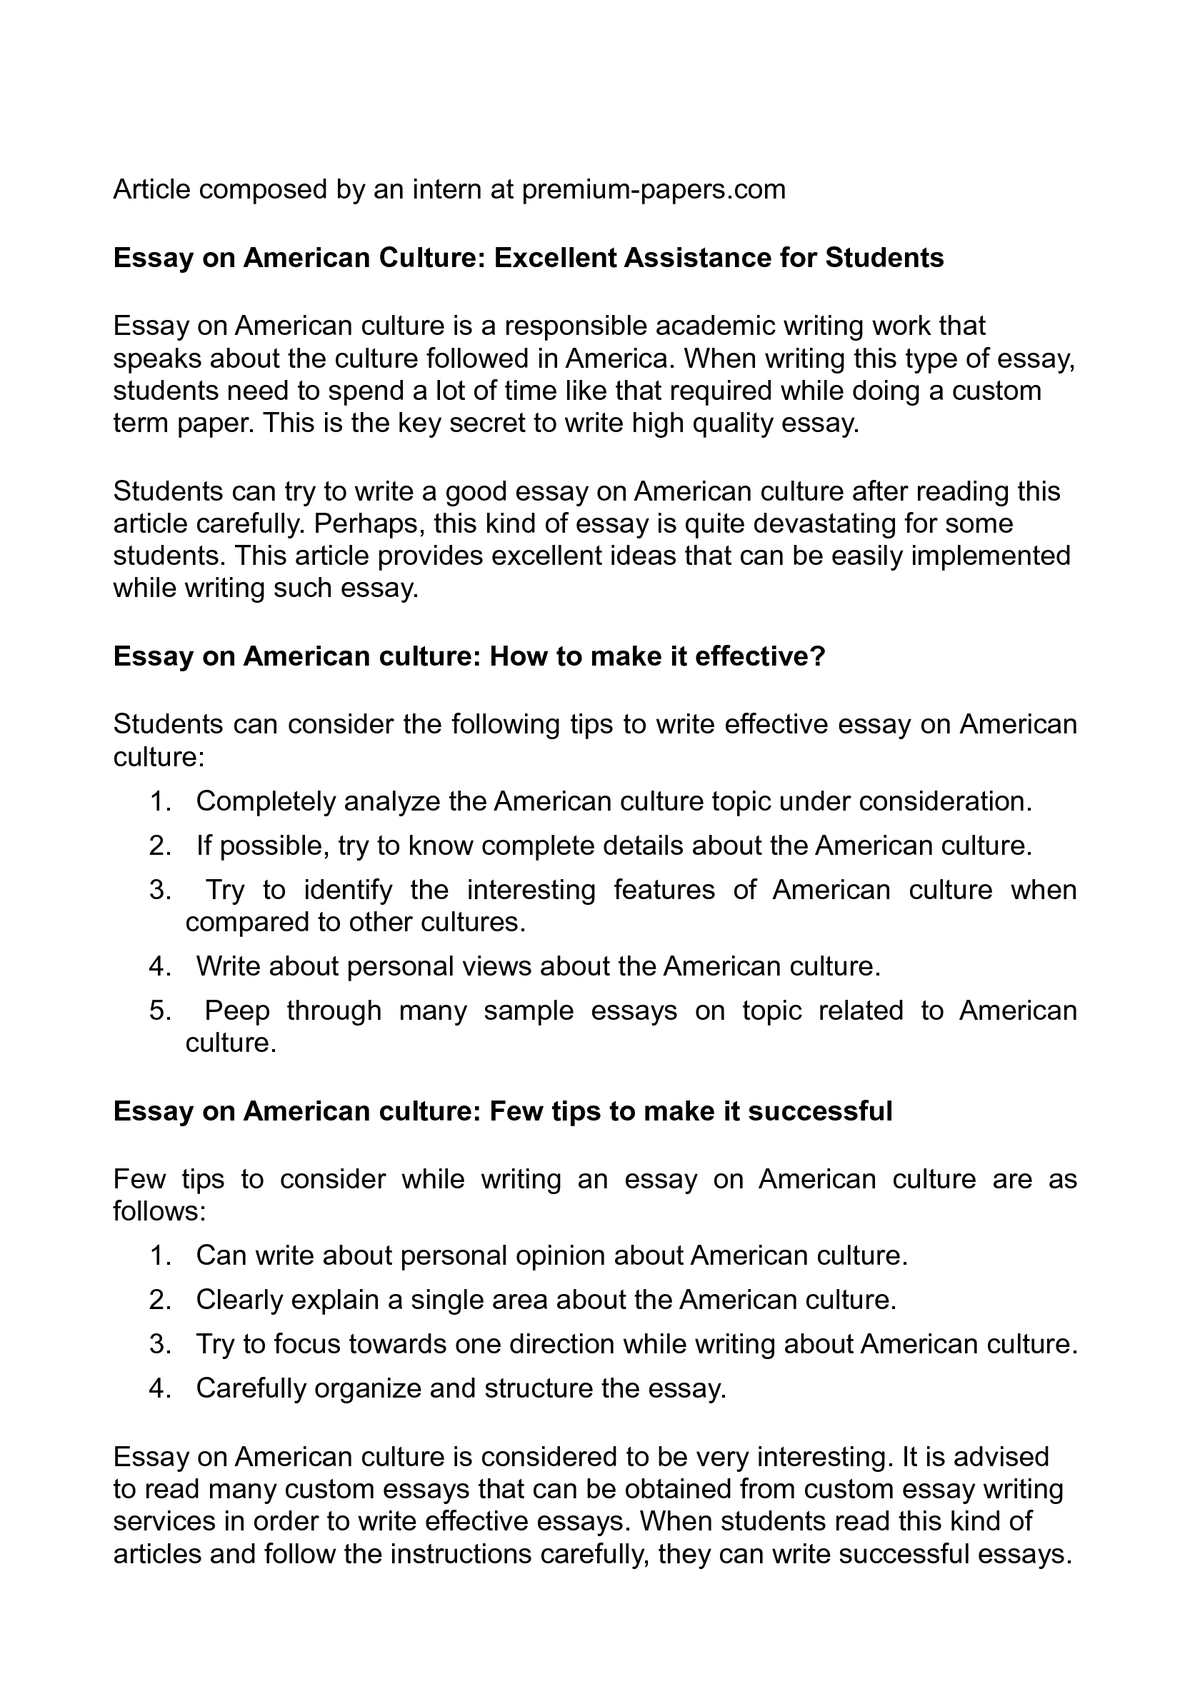 Essay Topics On Current Issues  Pearl Harbor Essays also The Pit And The Pendulum Essay Calamo  Essay On American Culture Excellent Assistance For Students Essay Punctuality